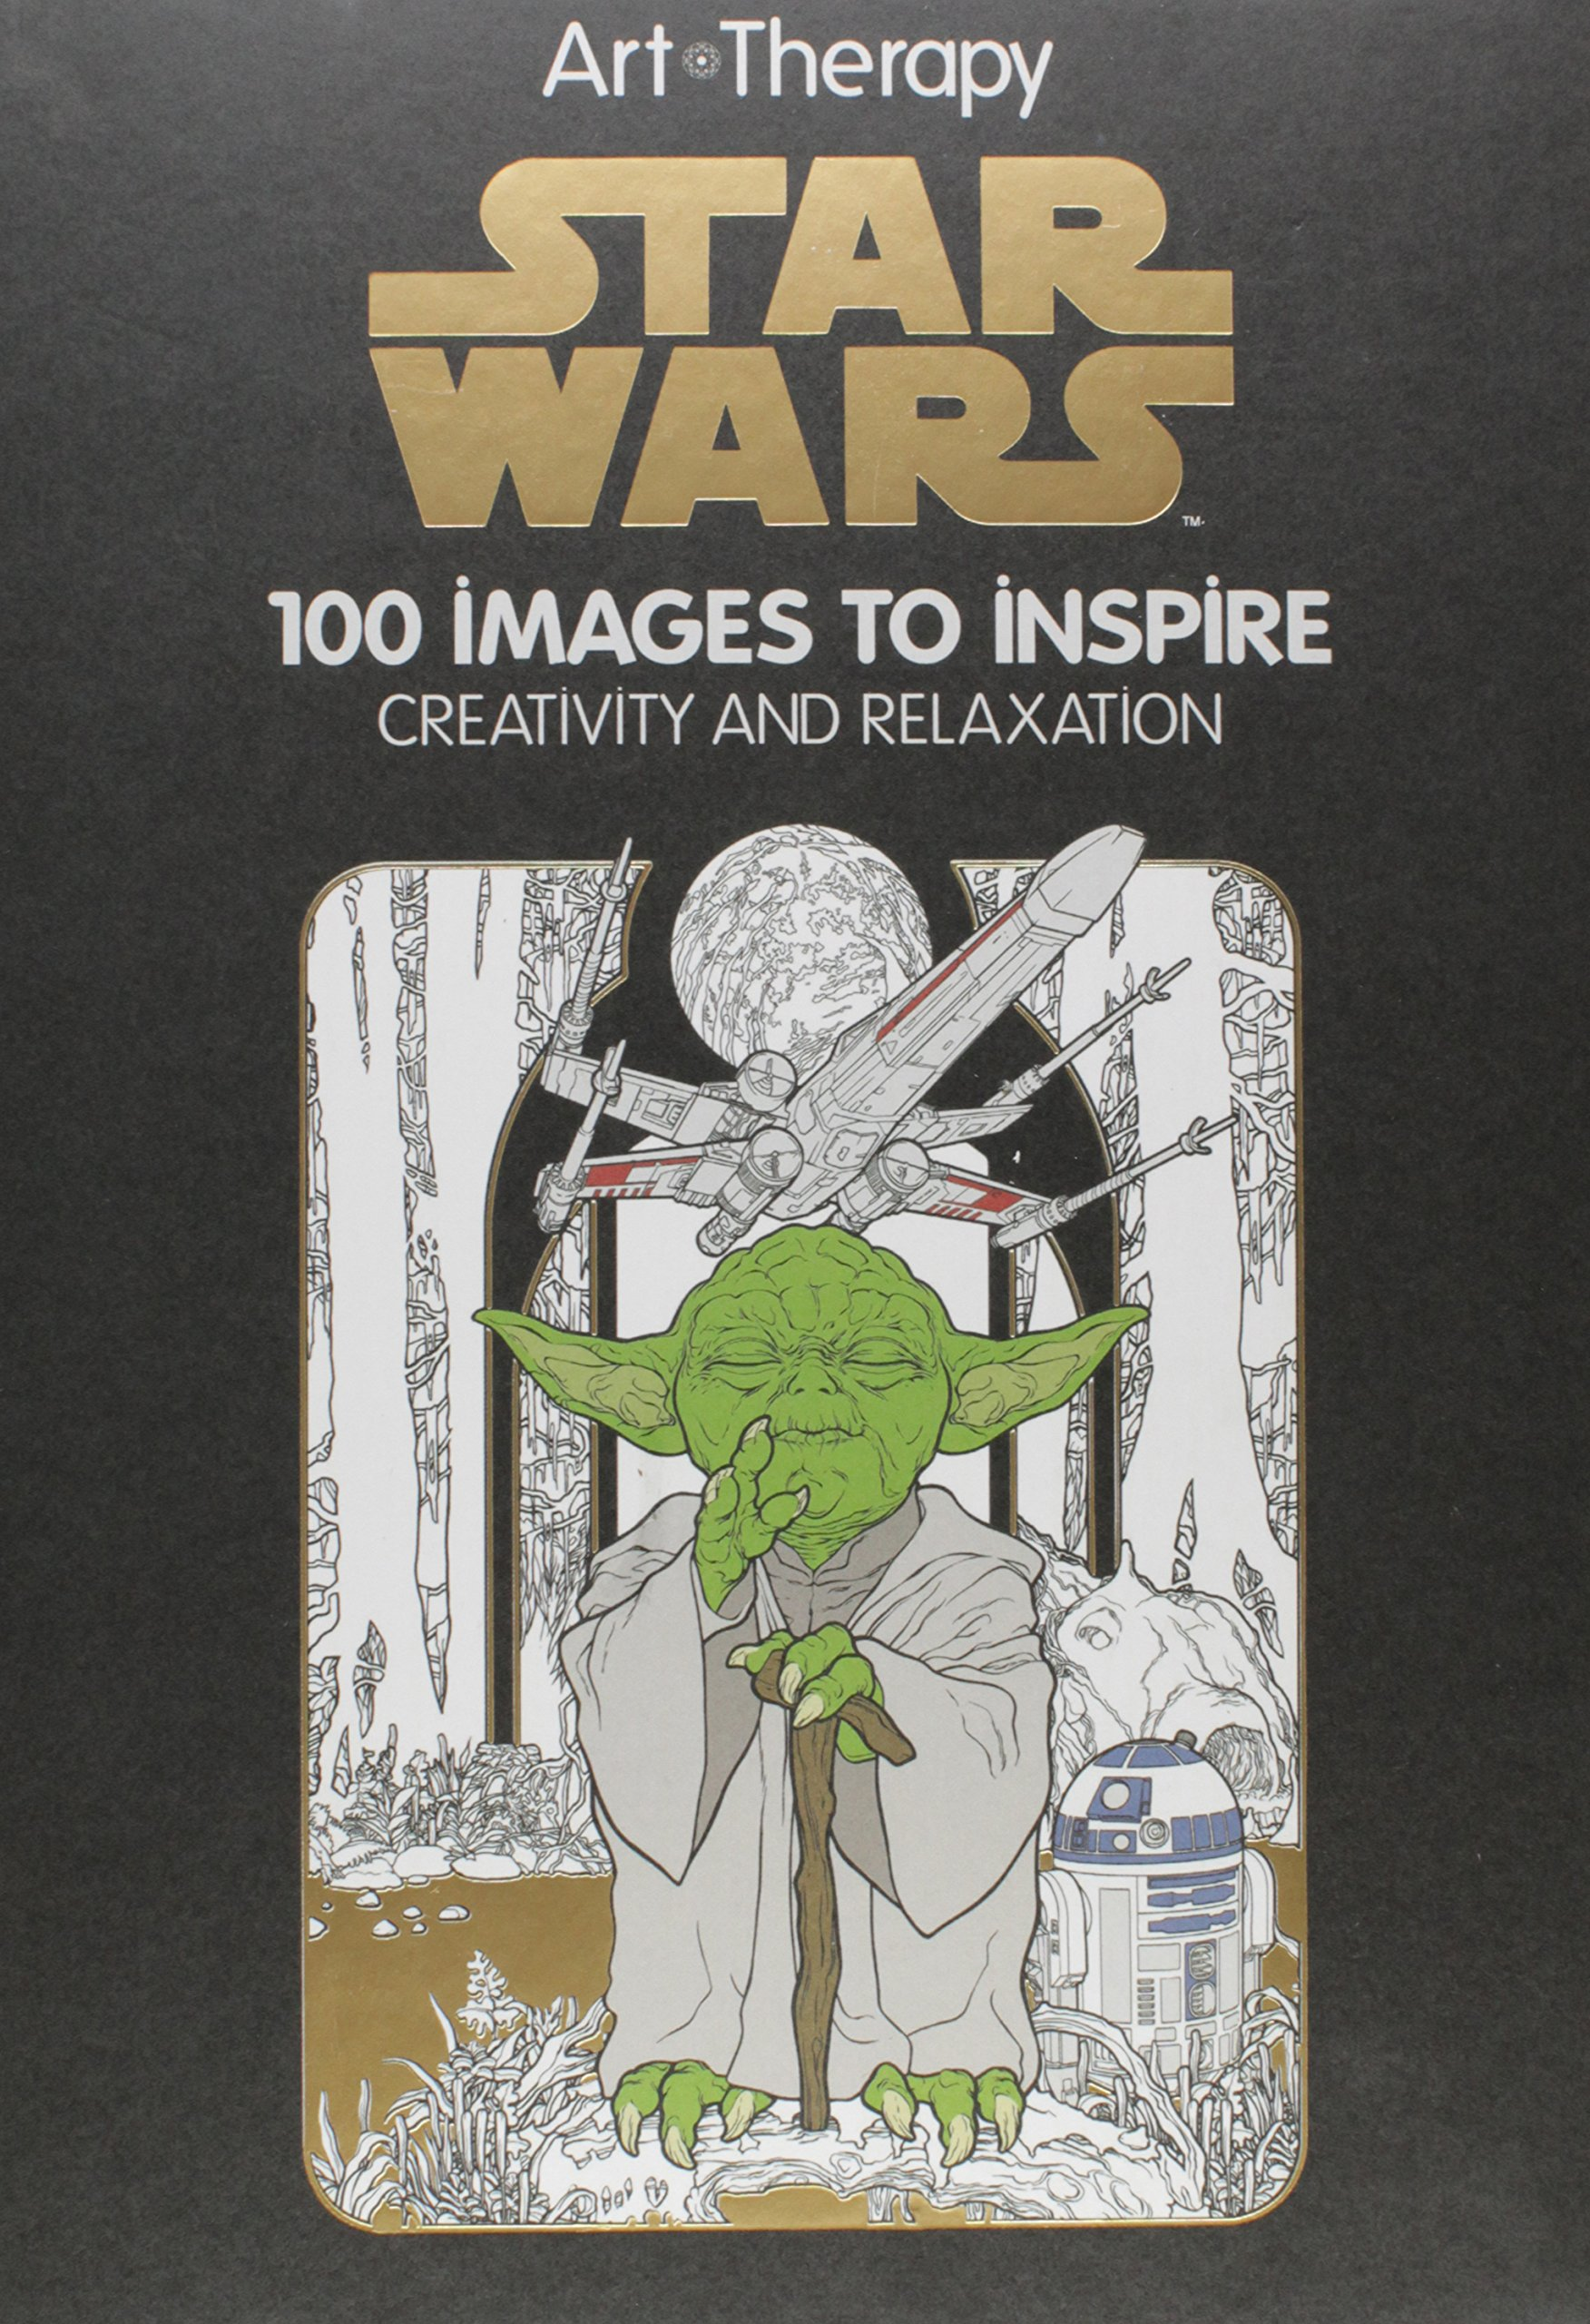 Star Wars Art Therapy: 100 Images to Inspire Creativity and Relaxation